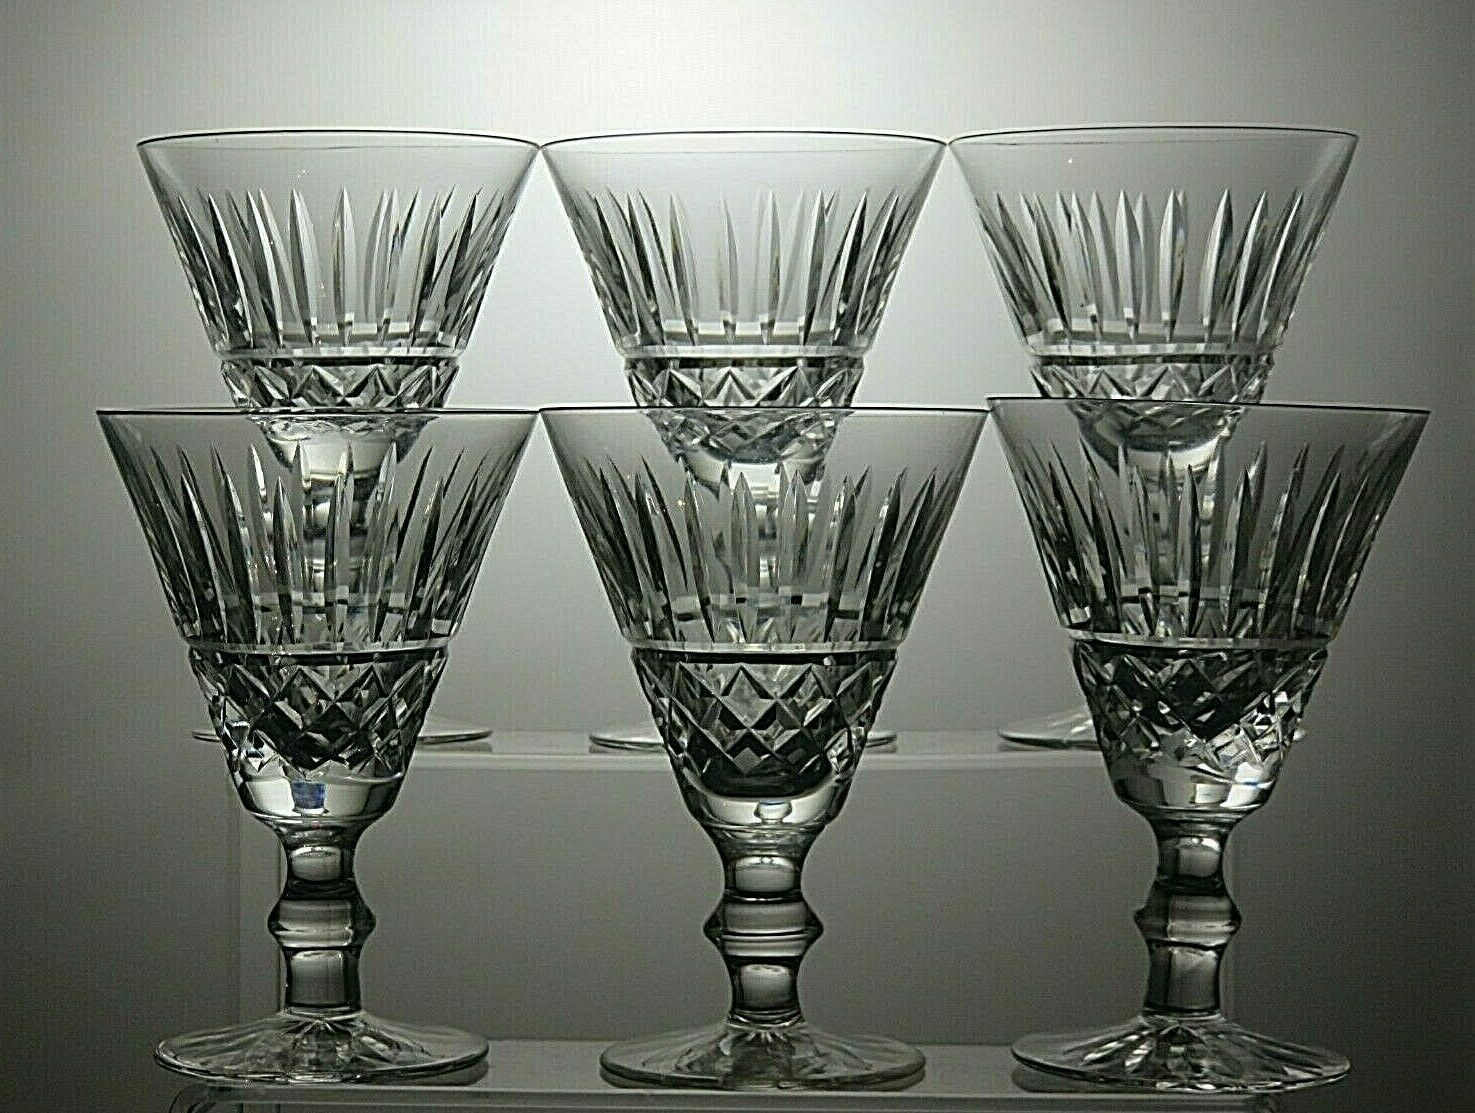 WATERFORD CRYSTAL  TRAMORE  CUT WINE GLASSES SET OF 6 - 5  TALL- SIGNED